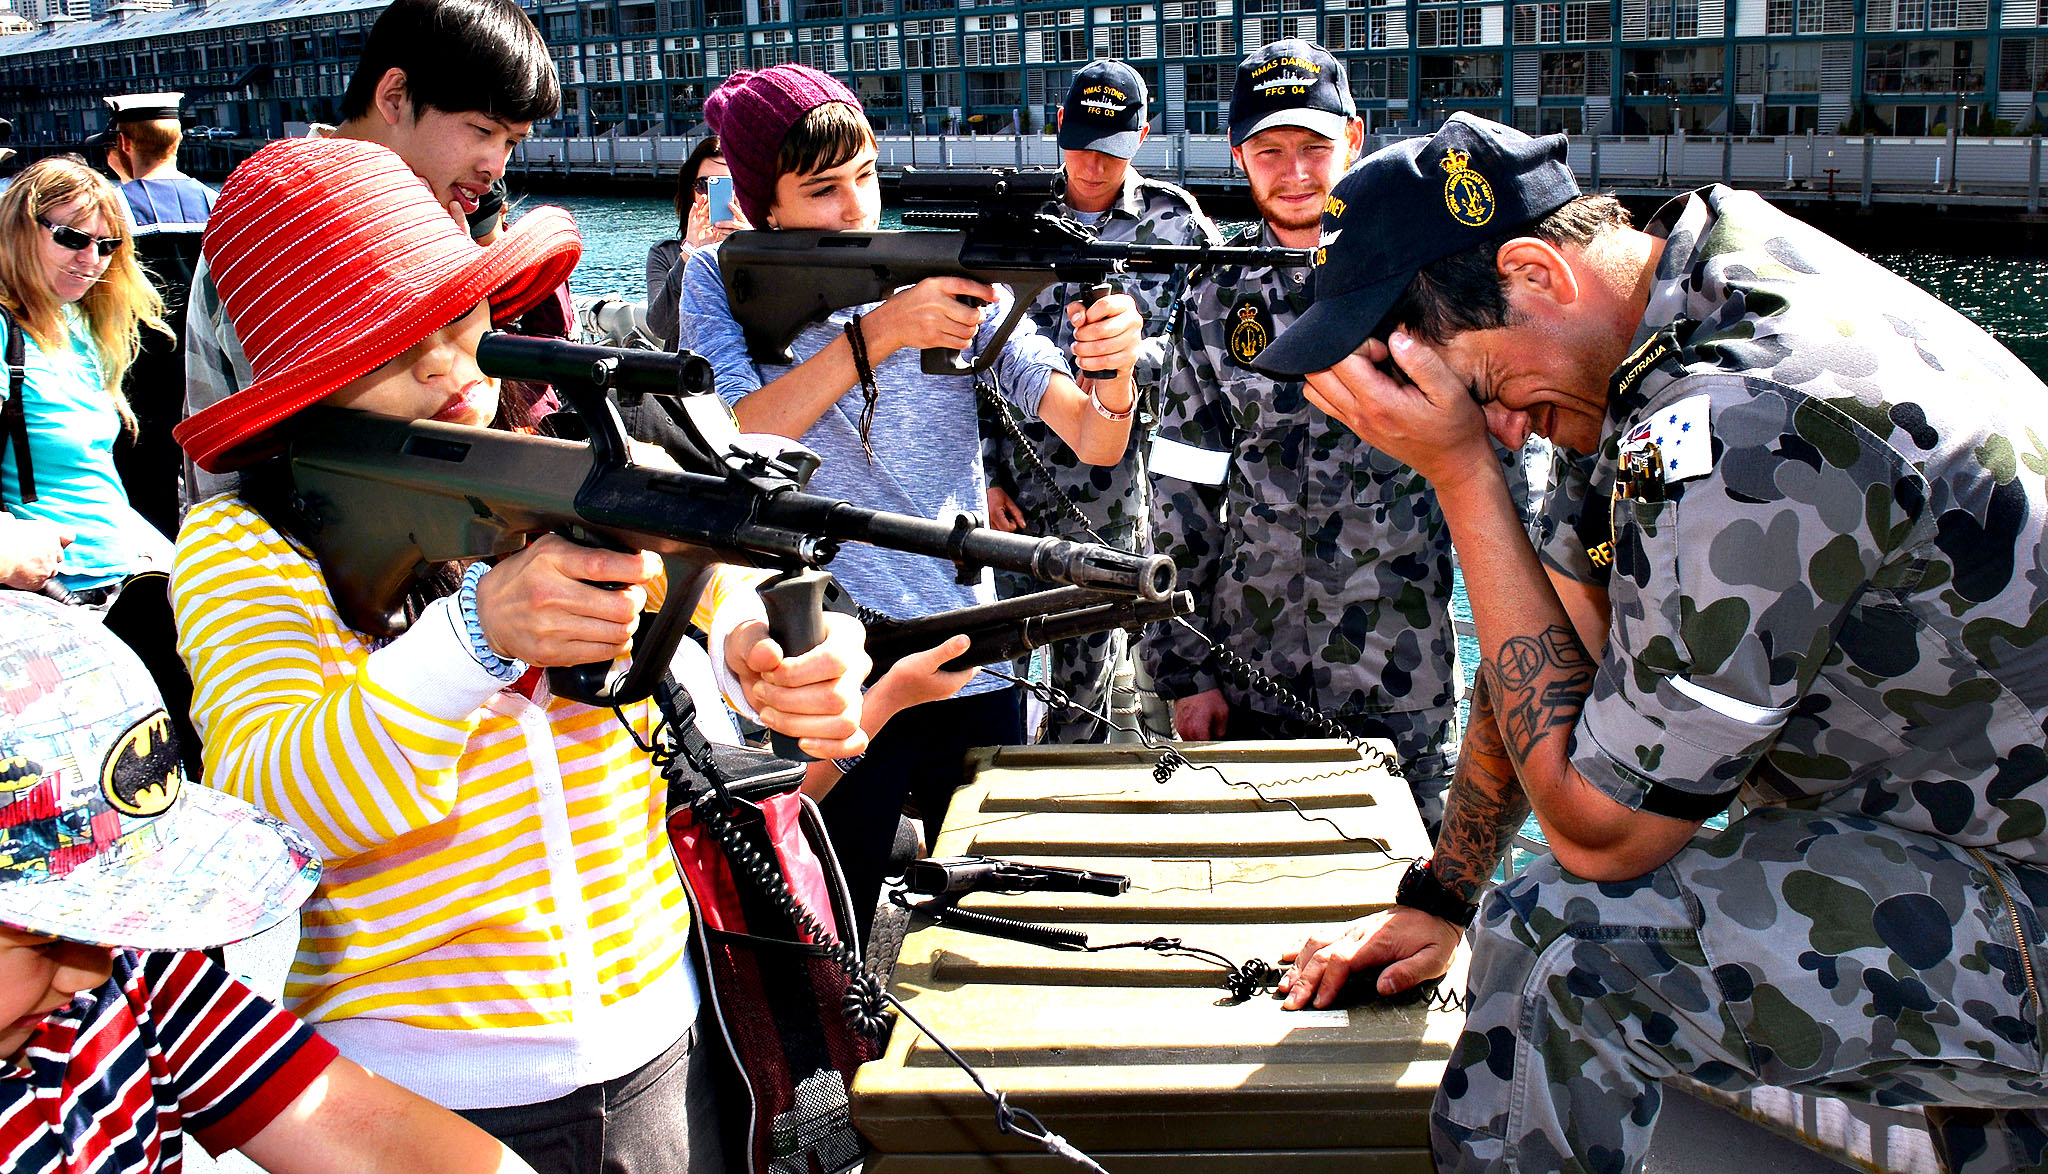 Visitors try out small weapons on the HMAS Darwin at Royal Australian Navy's Sydney base of Garden Island, during an open day after the Navy celebrated 100 years since their first ships entered Sydney Harbour, on October 7, 2013.  The open day followed the Royal Australian Navy International Fleet Review which also included visiting warships from Britain, Singapore, Japan, India, Thailand and the United States.